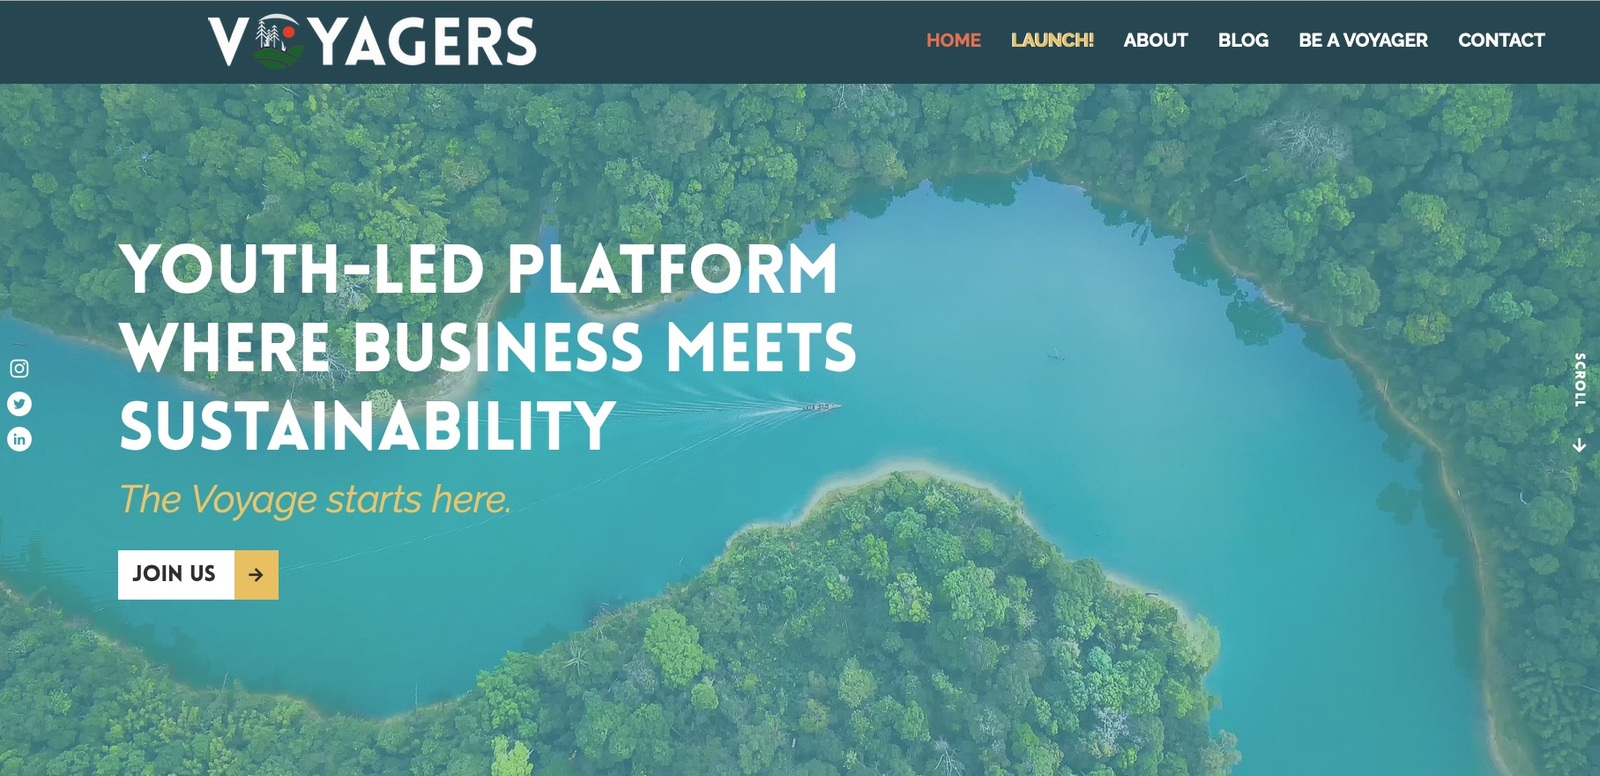 Youth-led Platform where Business meets Sustainability